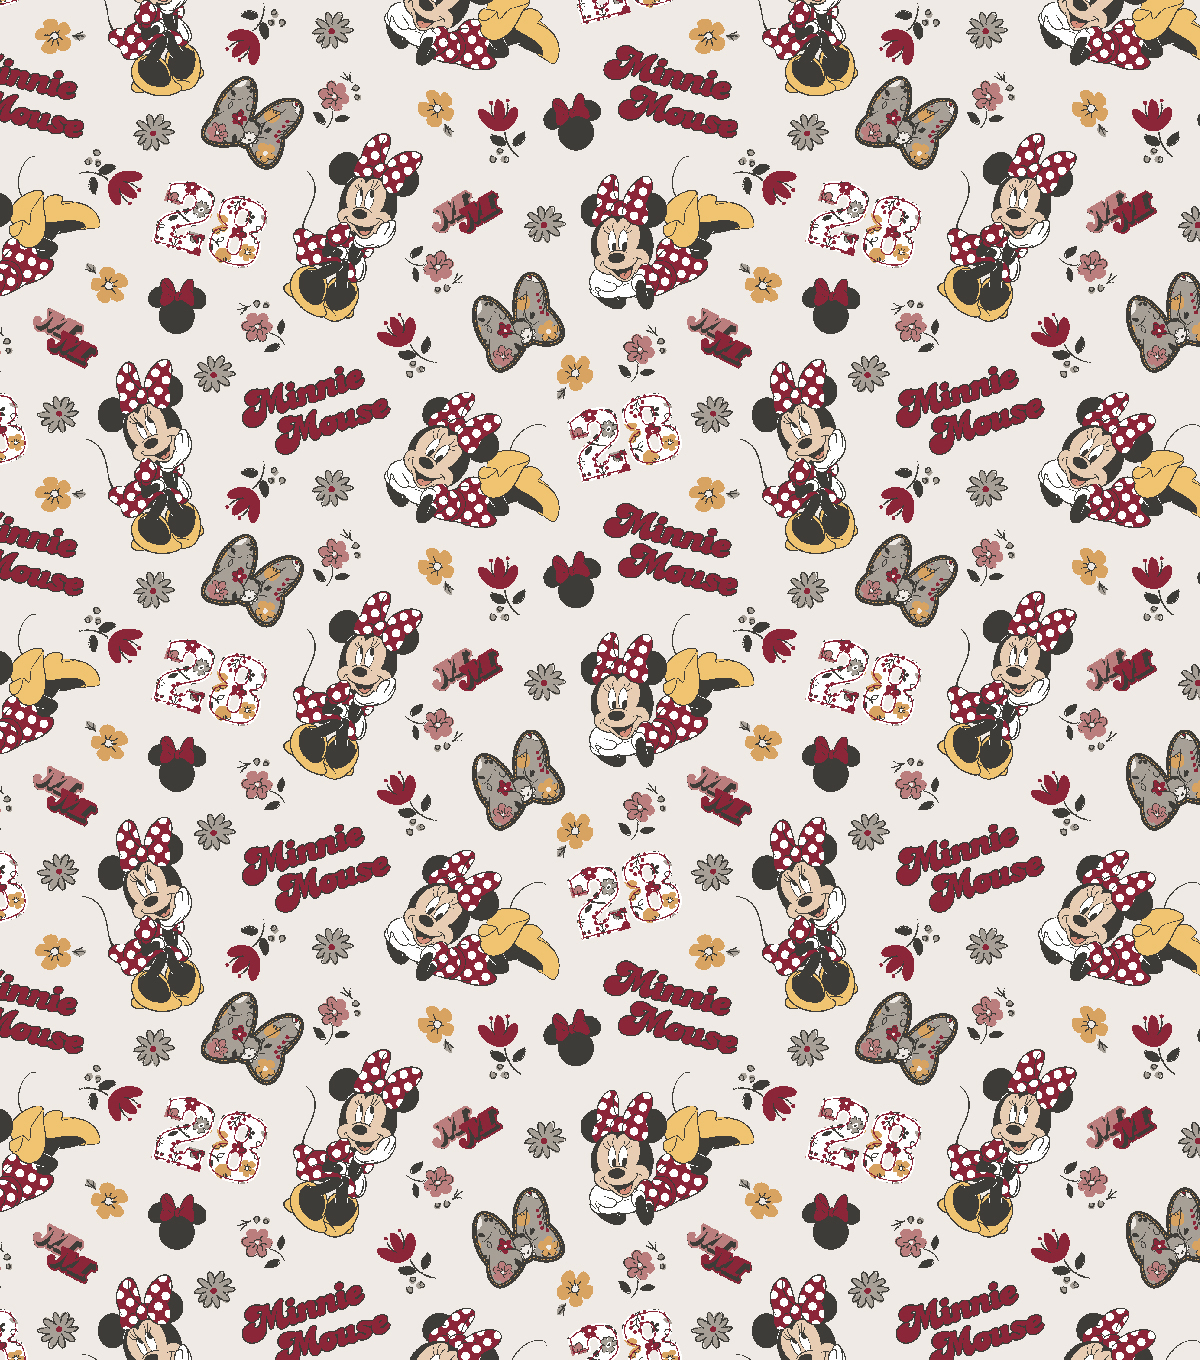 Disney Cotton Fabric-Minnie Floral